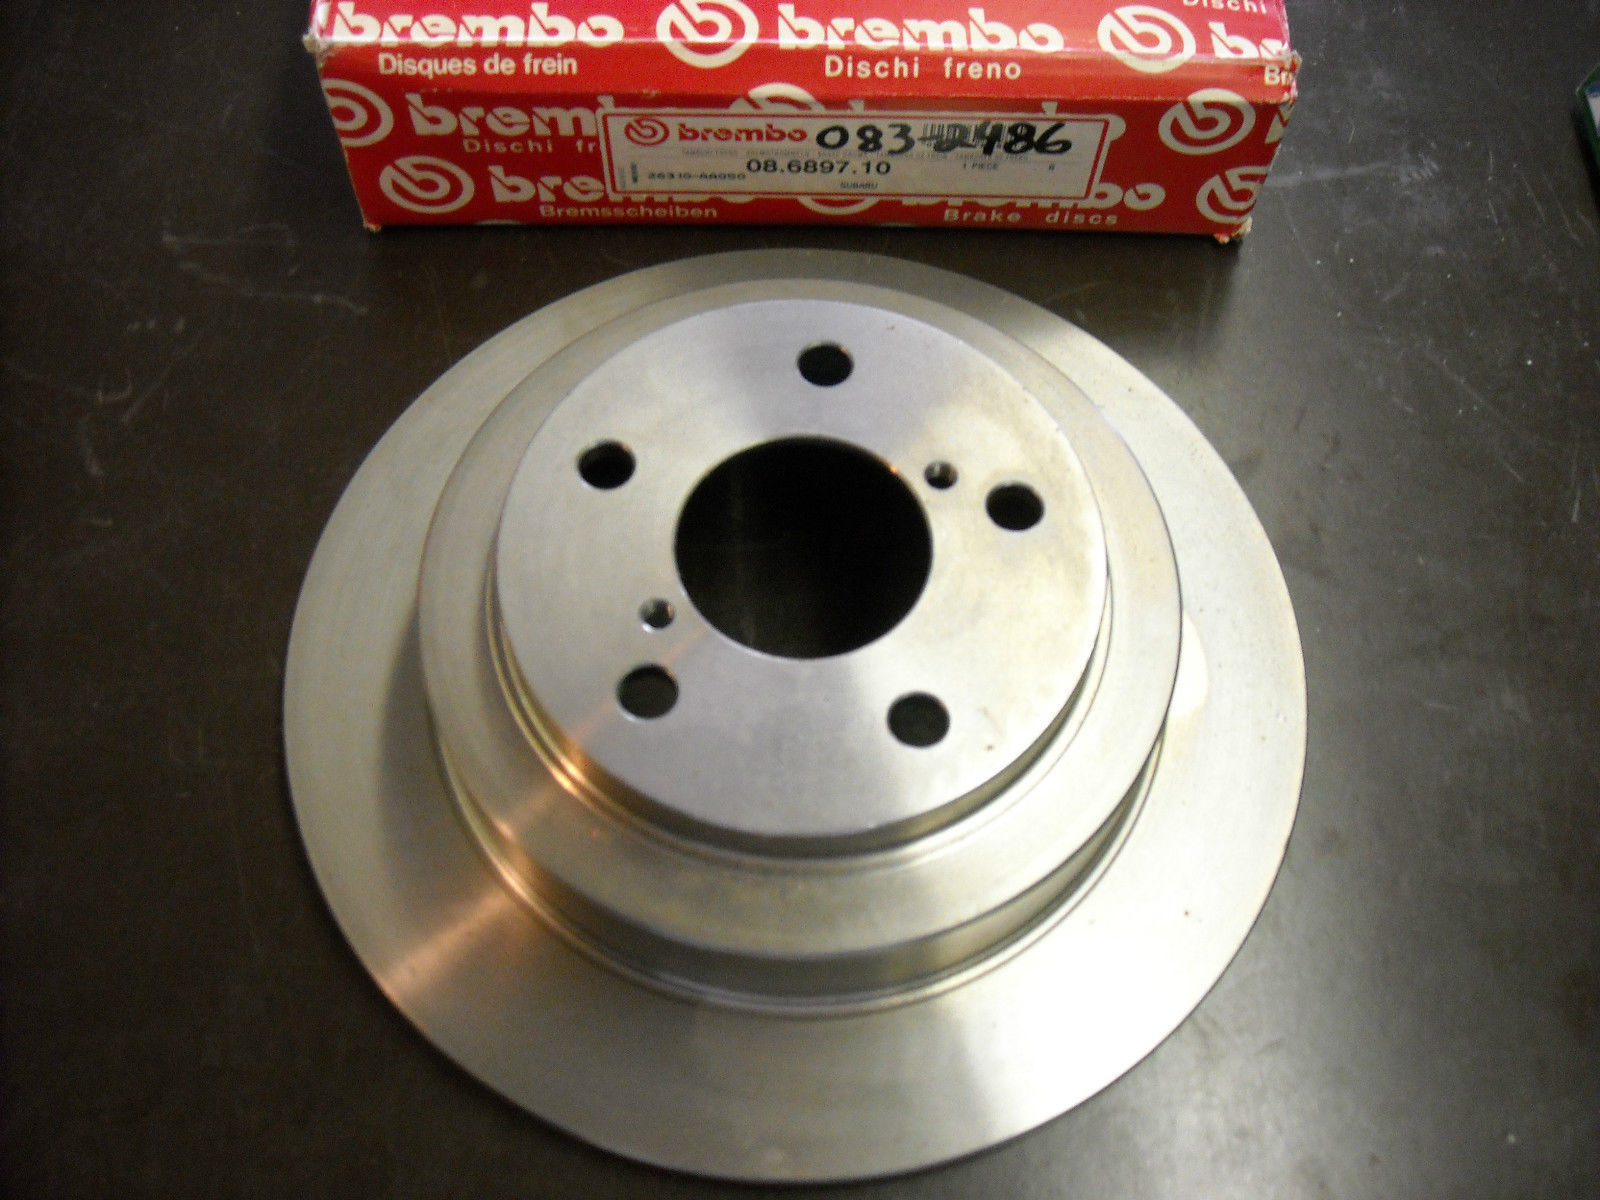 Primary image for Brembo Brake Rotor 08.6897.10 (new, rear, fits Subaru Impreza, Legace)